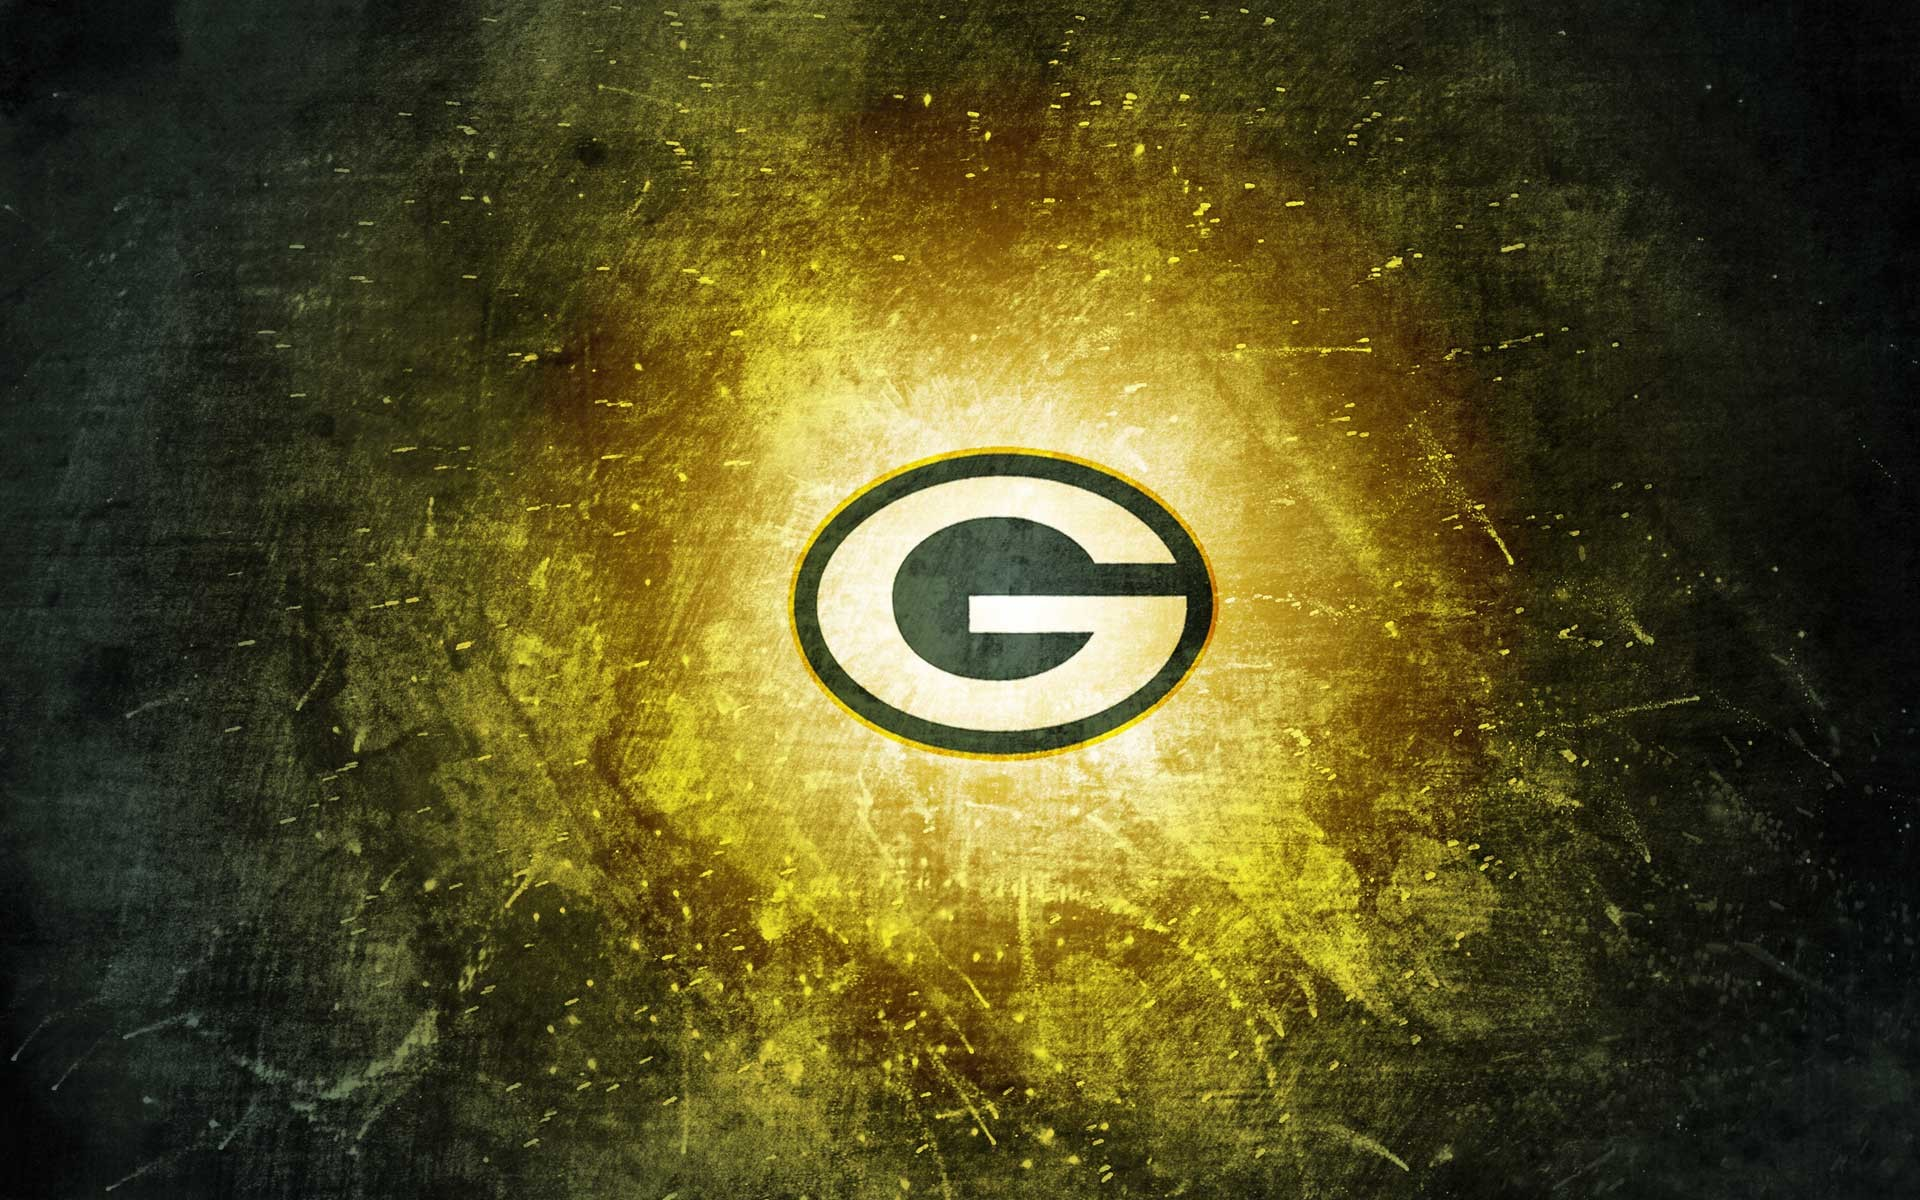 Green bay packers images wallpaper logo 64 images 1920x1200 green bay packers wallpaper dr odd voltagebd Image collections